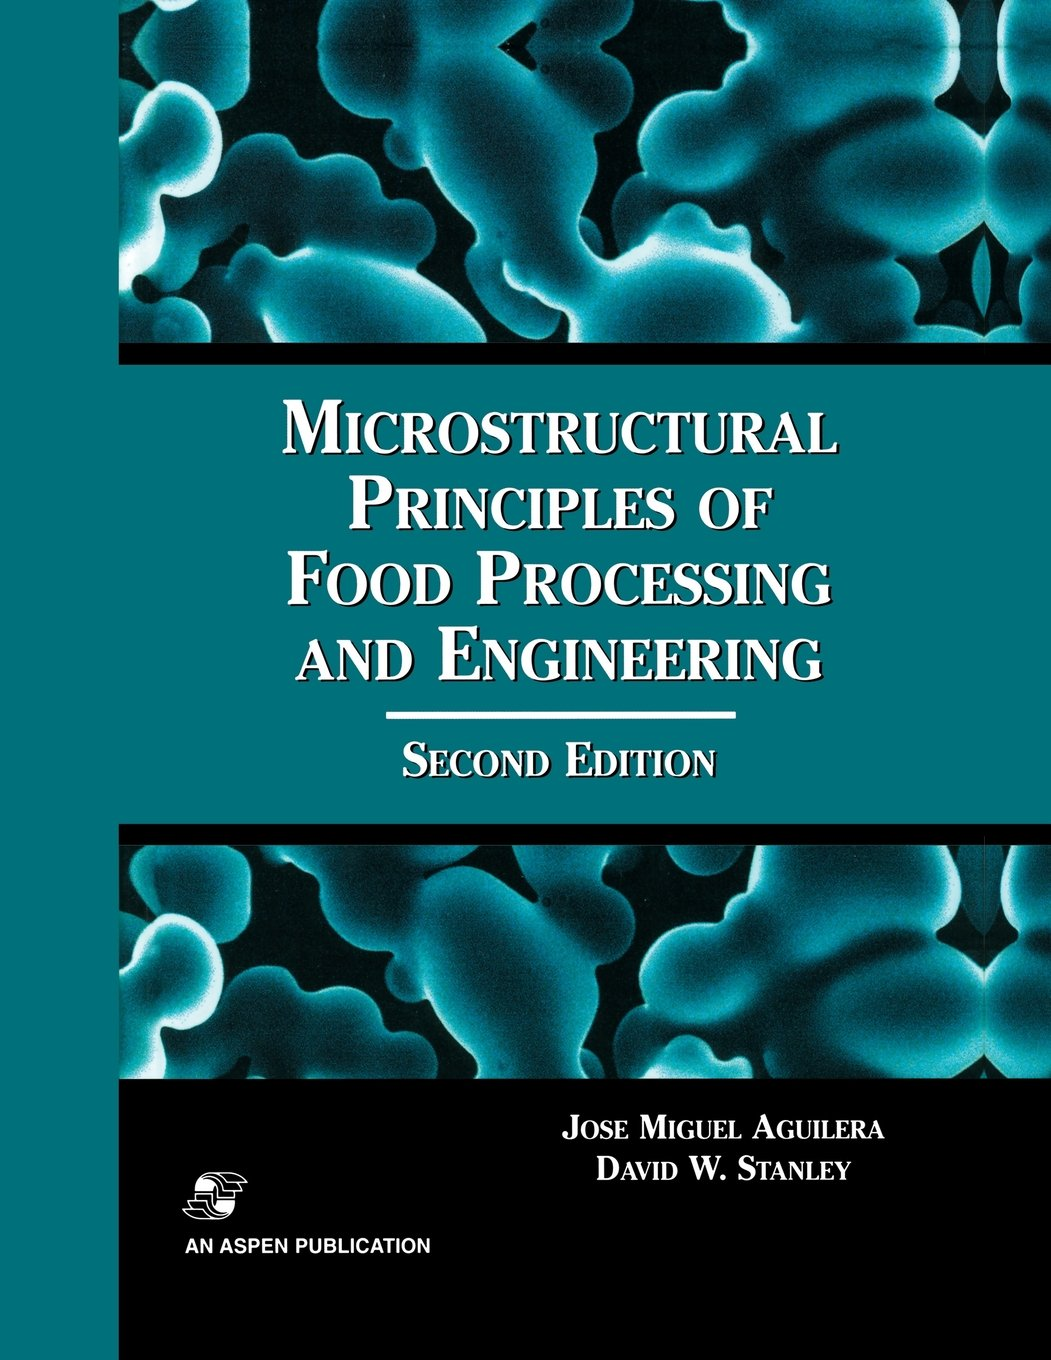 Microstructural_Principles